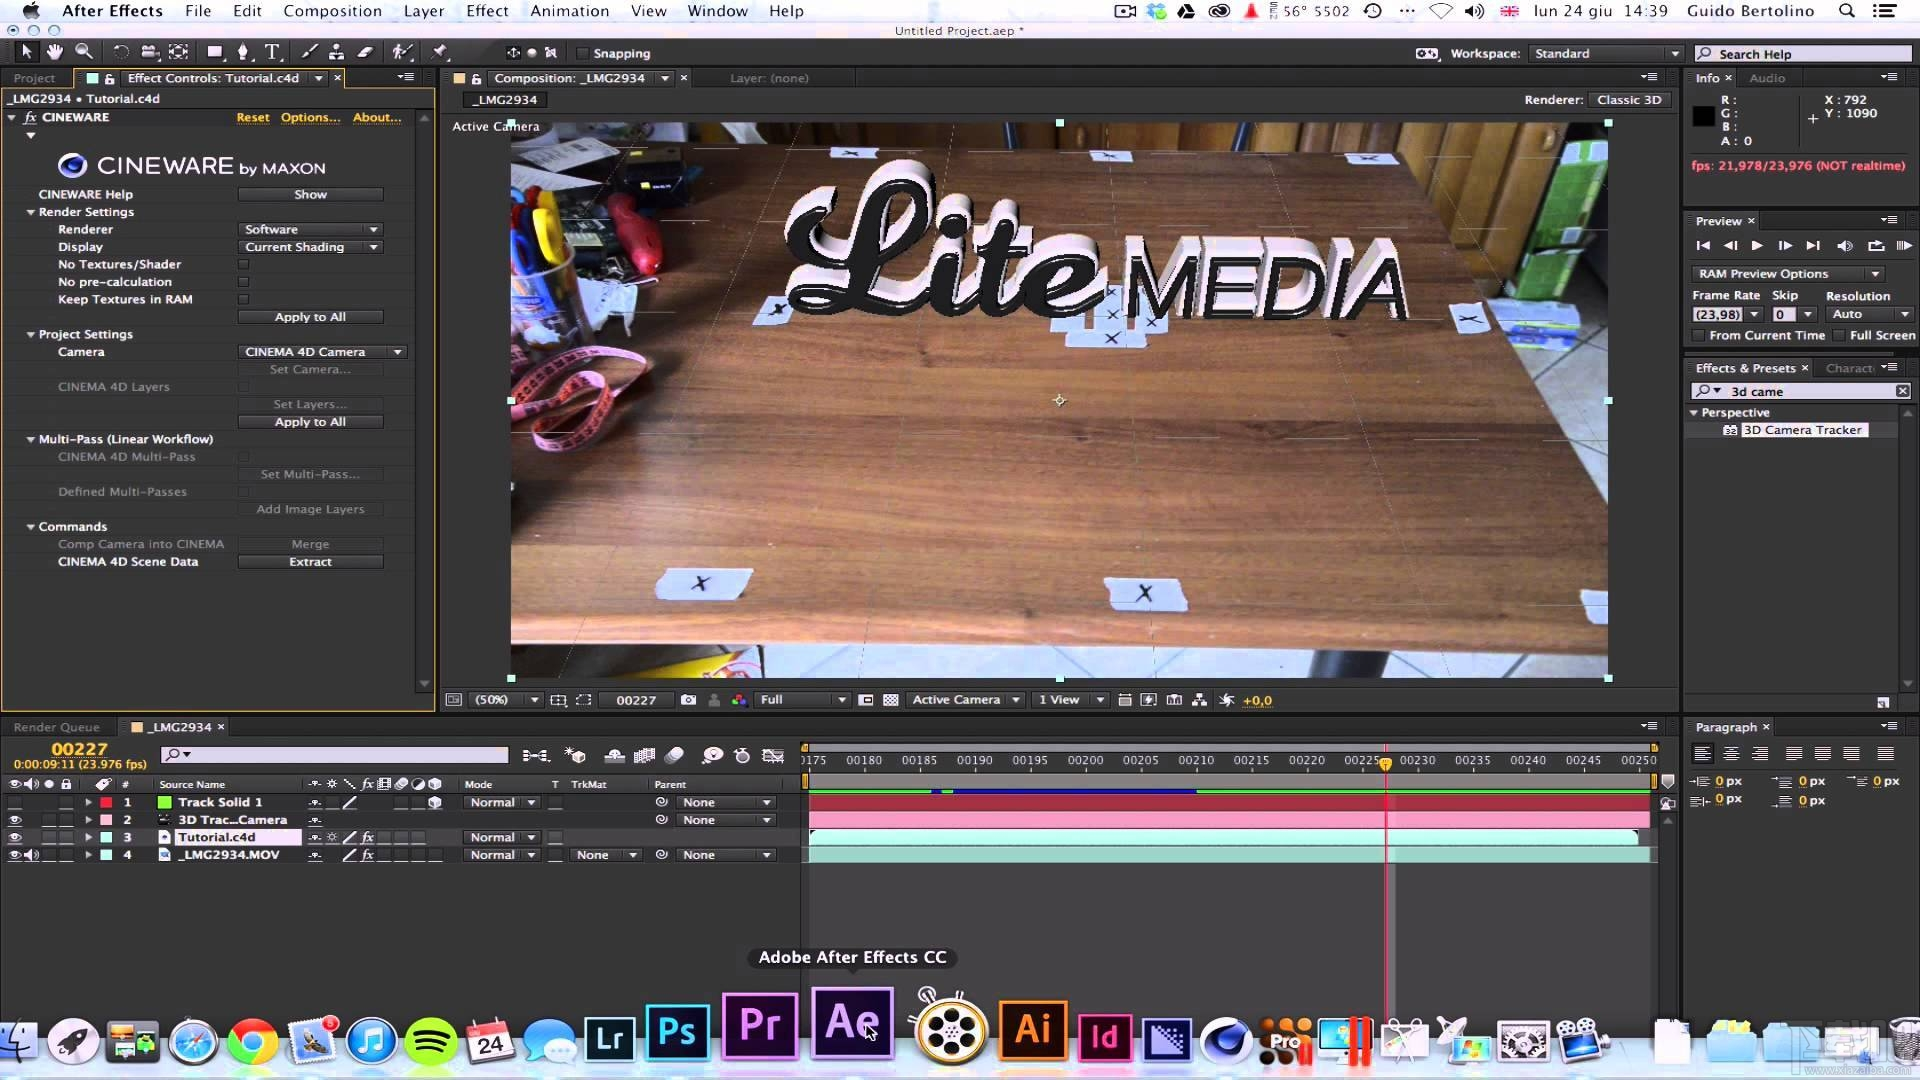 Adobe After Effects CCafter effects cc 官方中文版 Adobe AfterEffects CC(制作视频软件) 12.0.0.404 官方中文版(3)